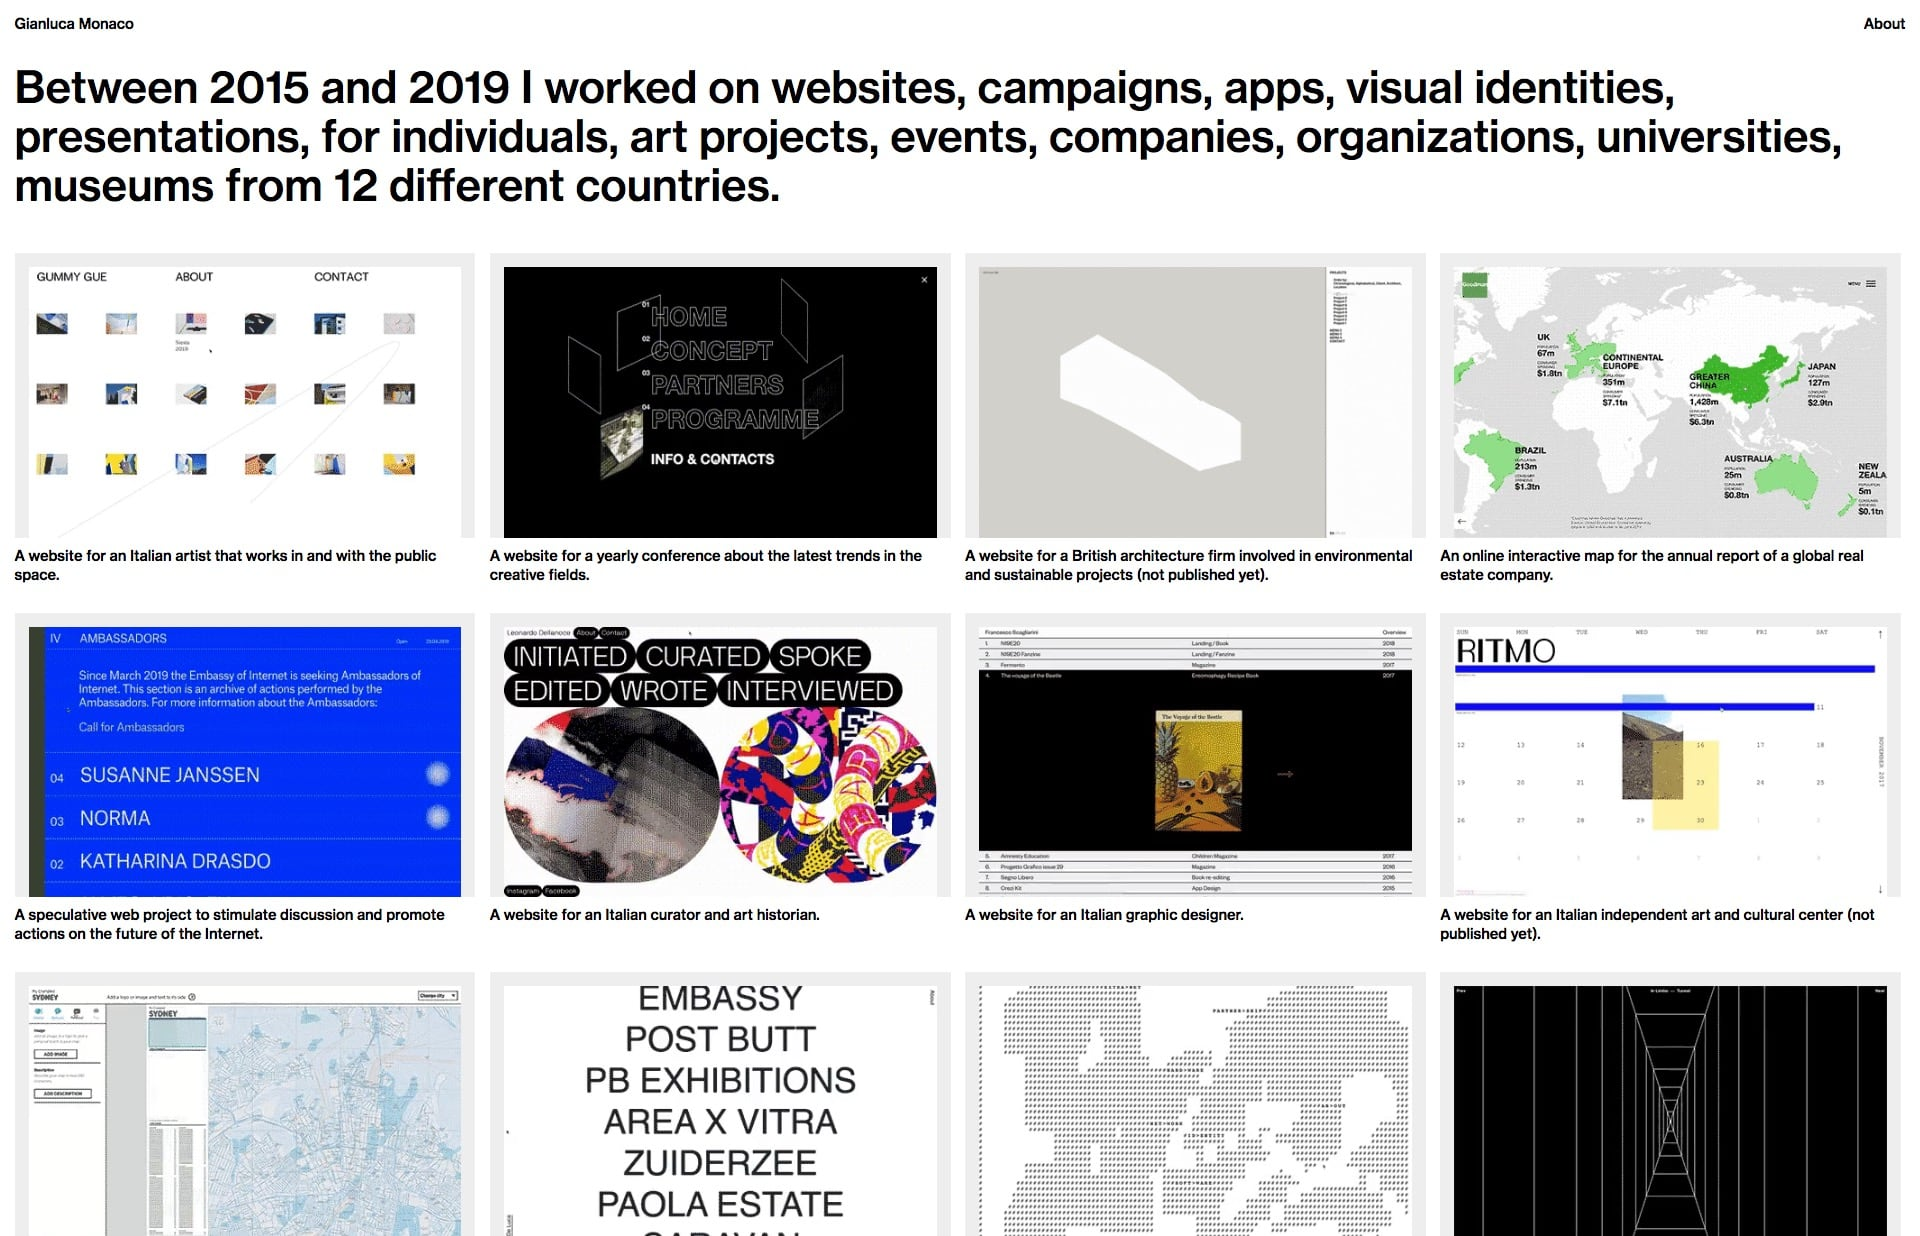 Screenshot of the website Gianluca Monaco, featured on The Gallery, a curated collection of minimal websites